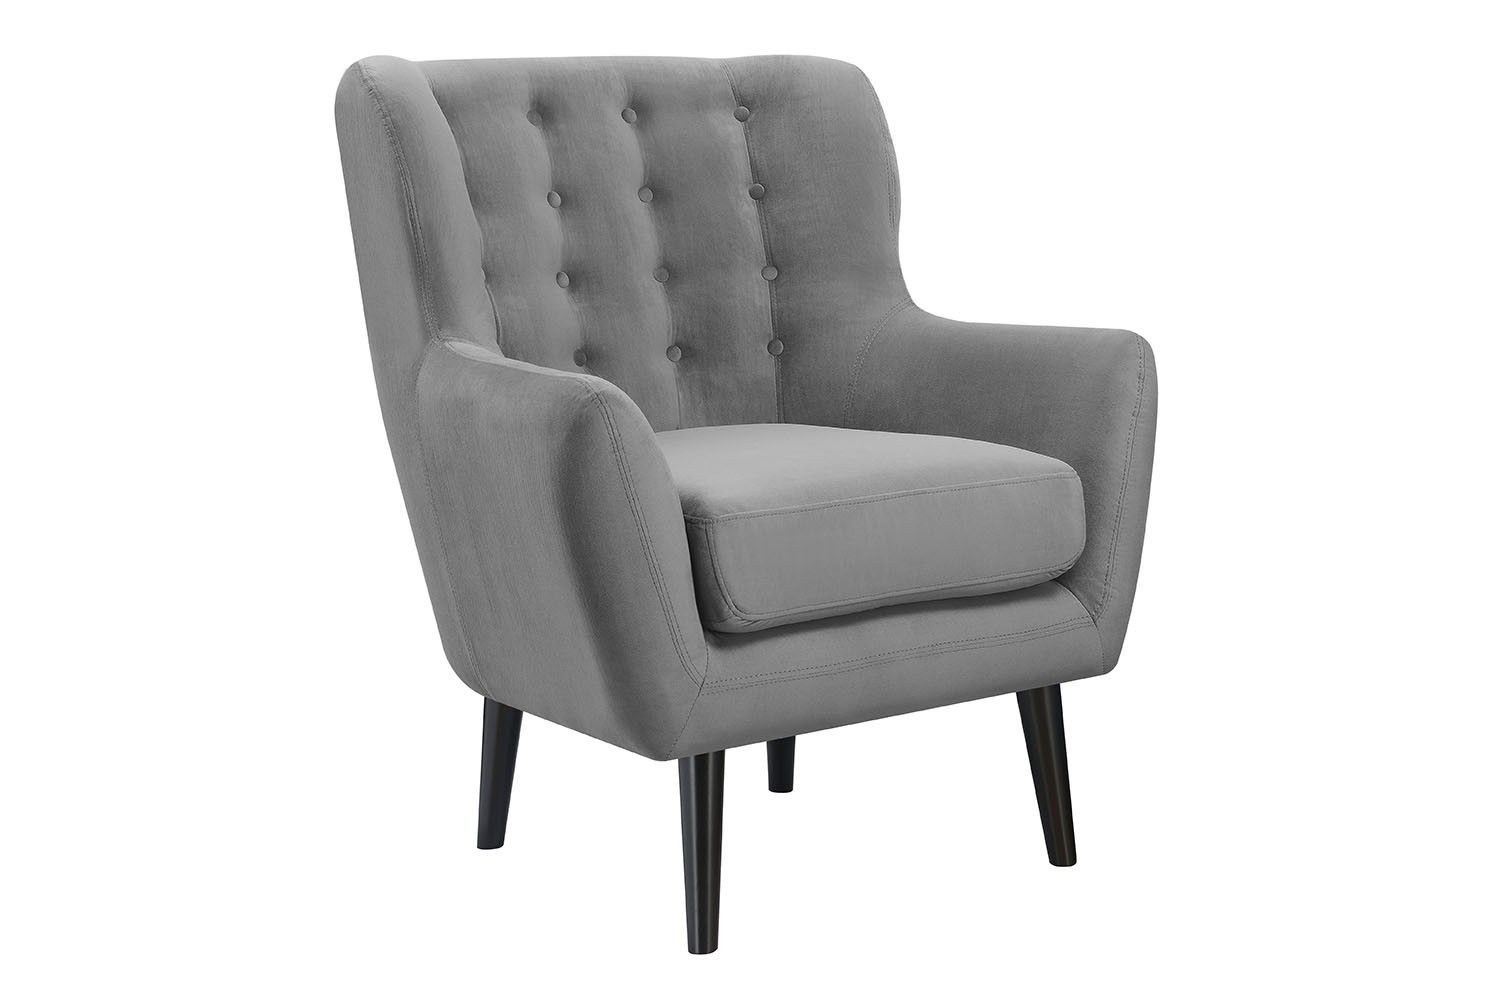 Lucy Gray Accent Chair | New Year's Sale On 500+ Products Inside Lucy Grey Sofa Chairs (View 8 of 25)